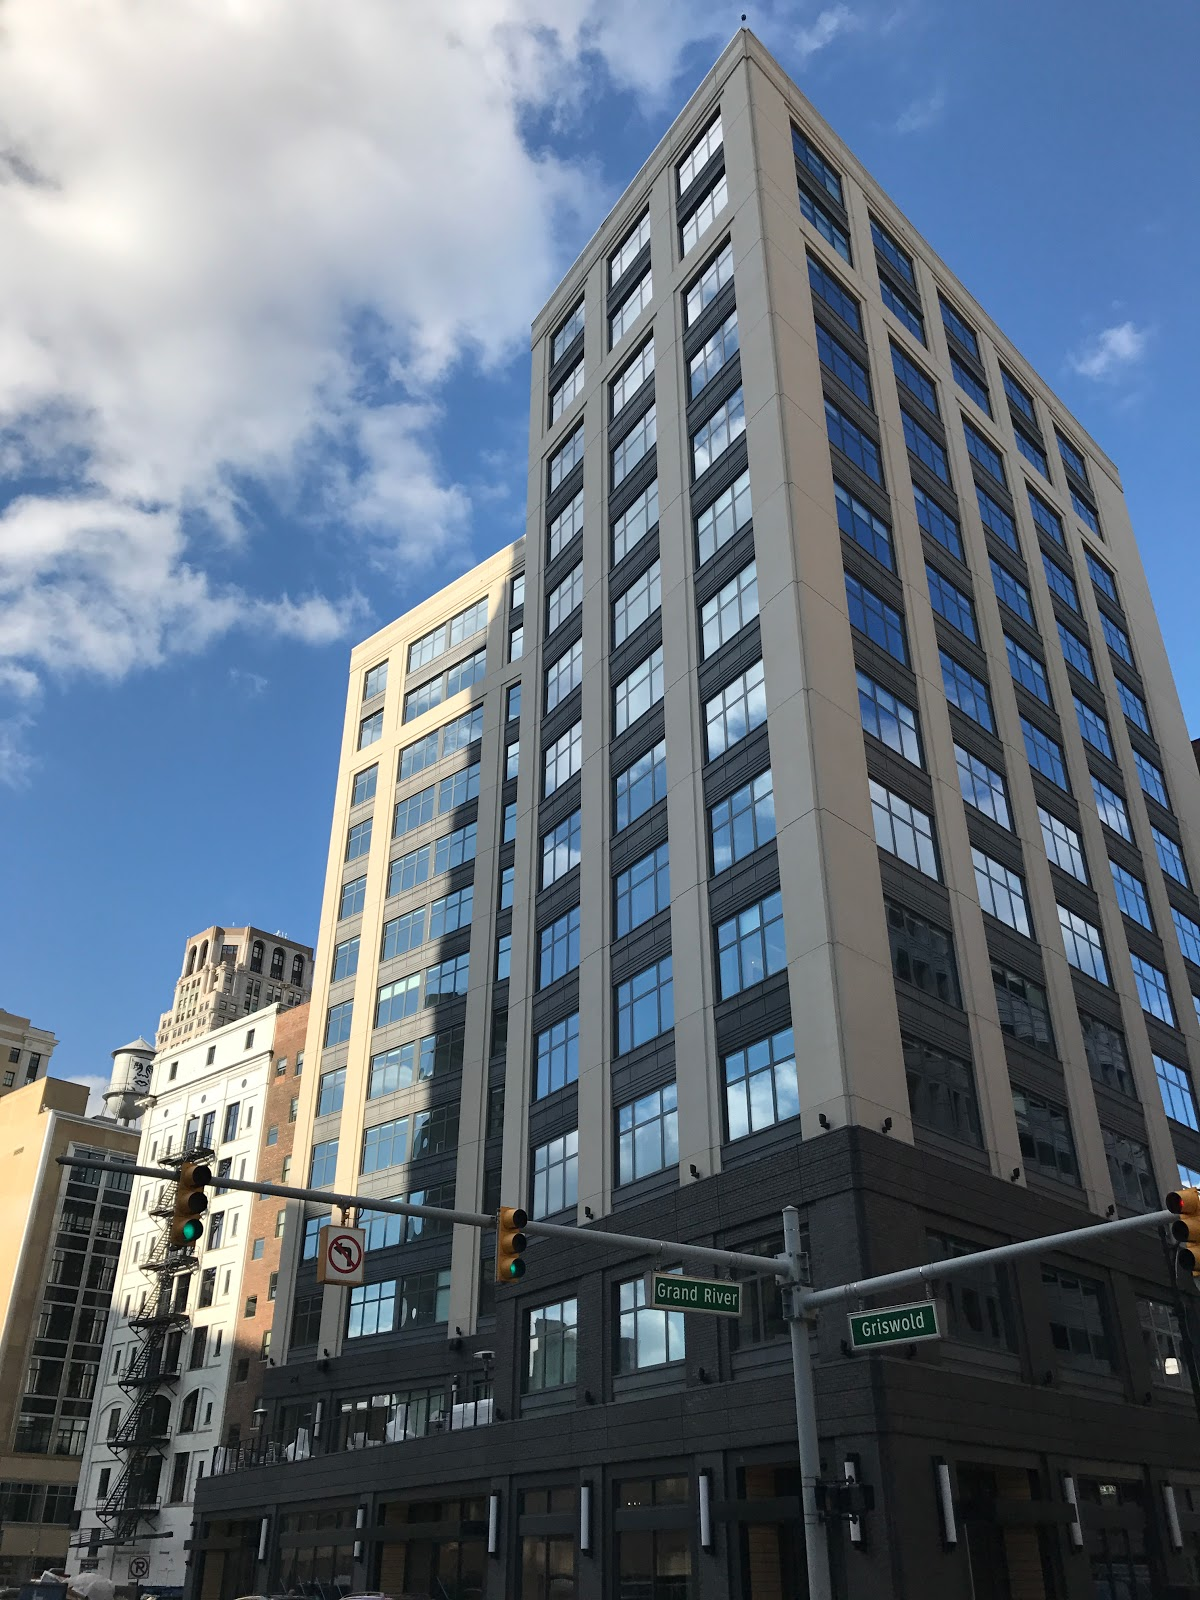 Dan Gilbert S 13 Story 218 Unit Micro Apartment Development Is Now Online In Capitol Park